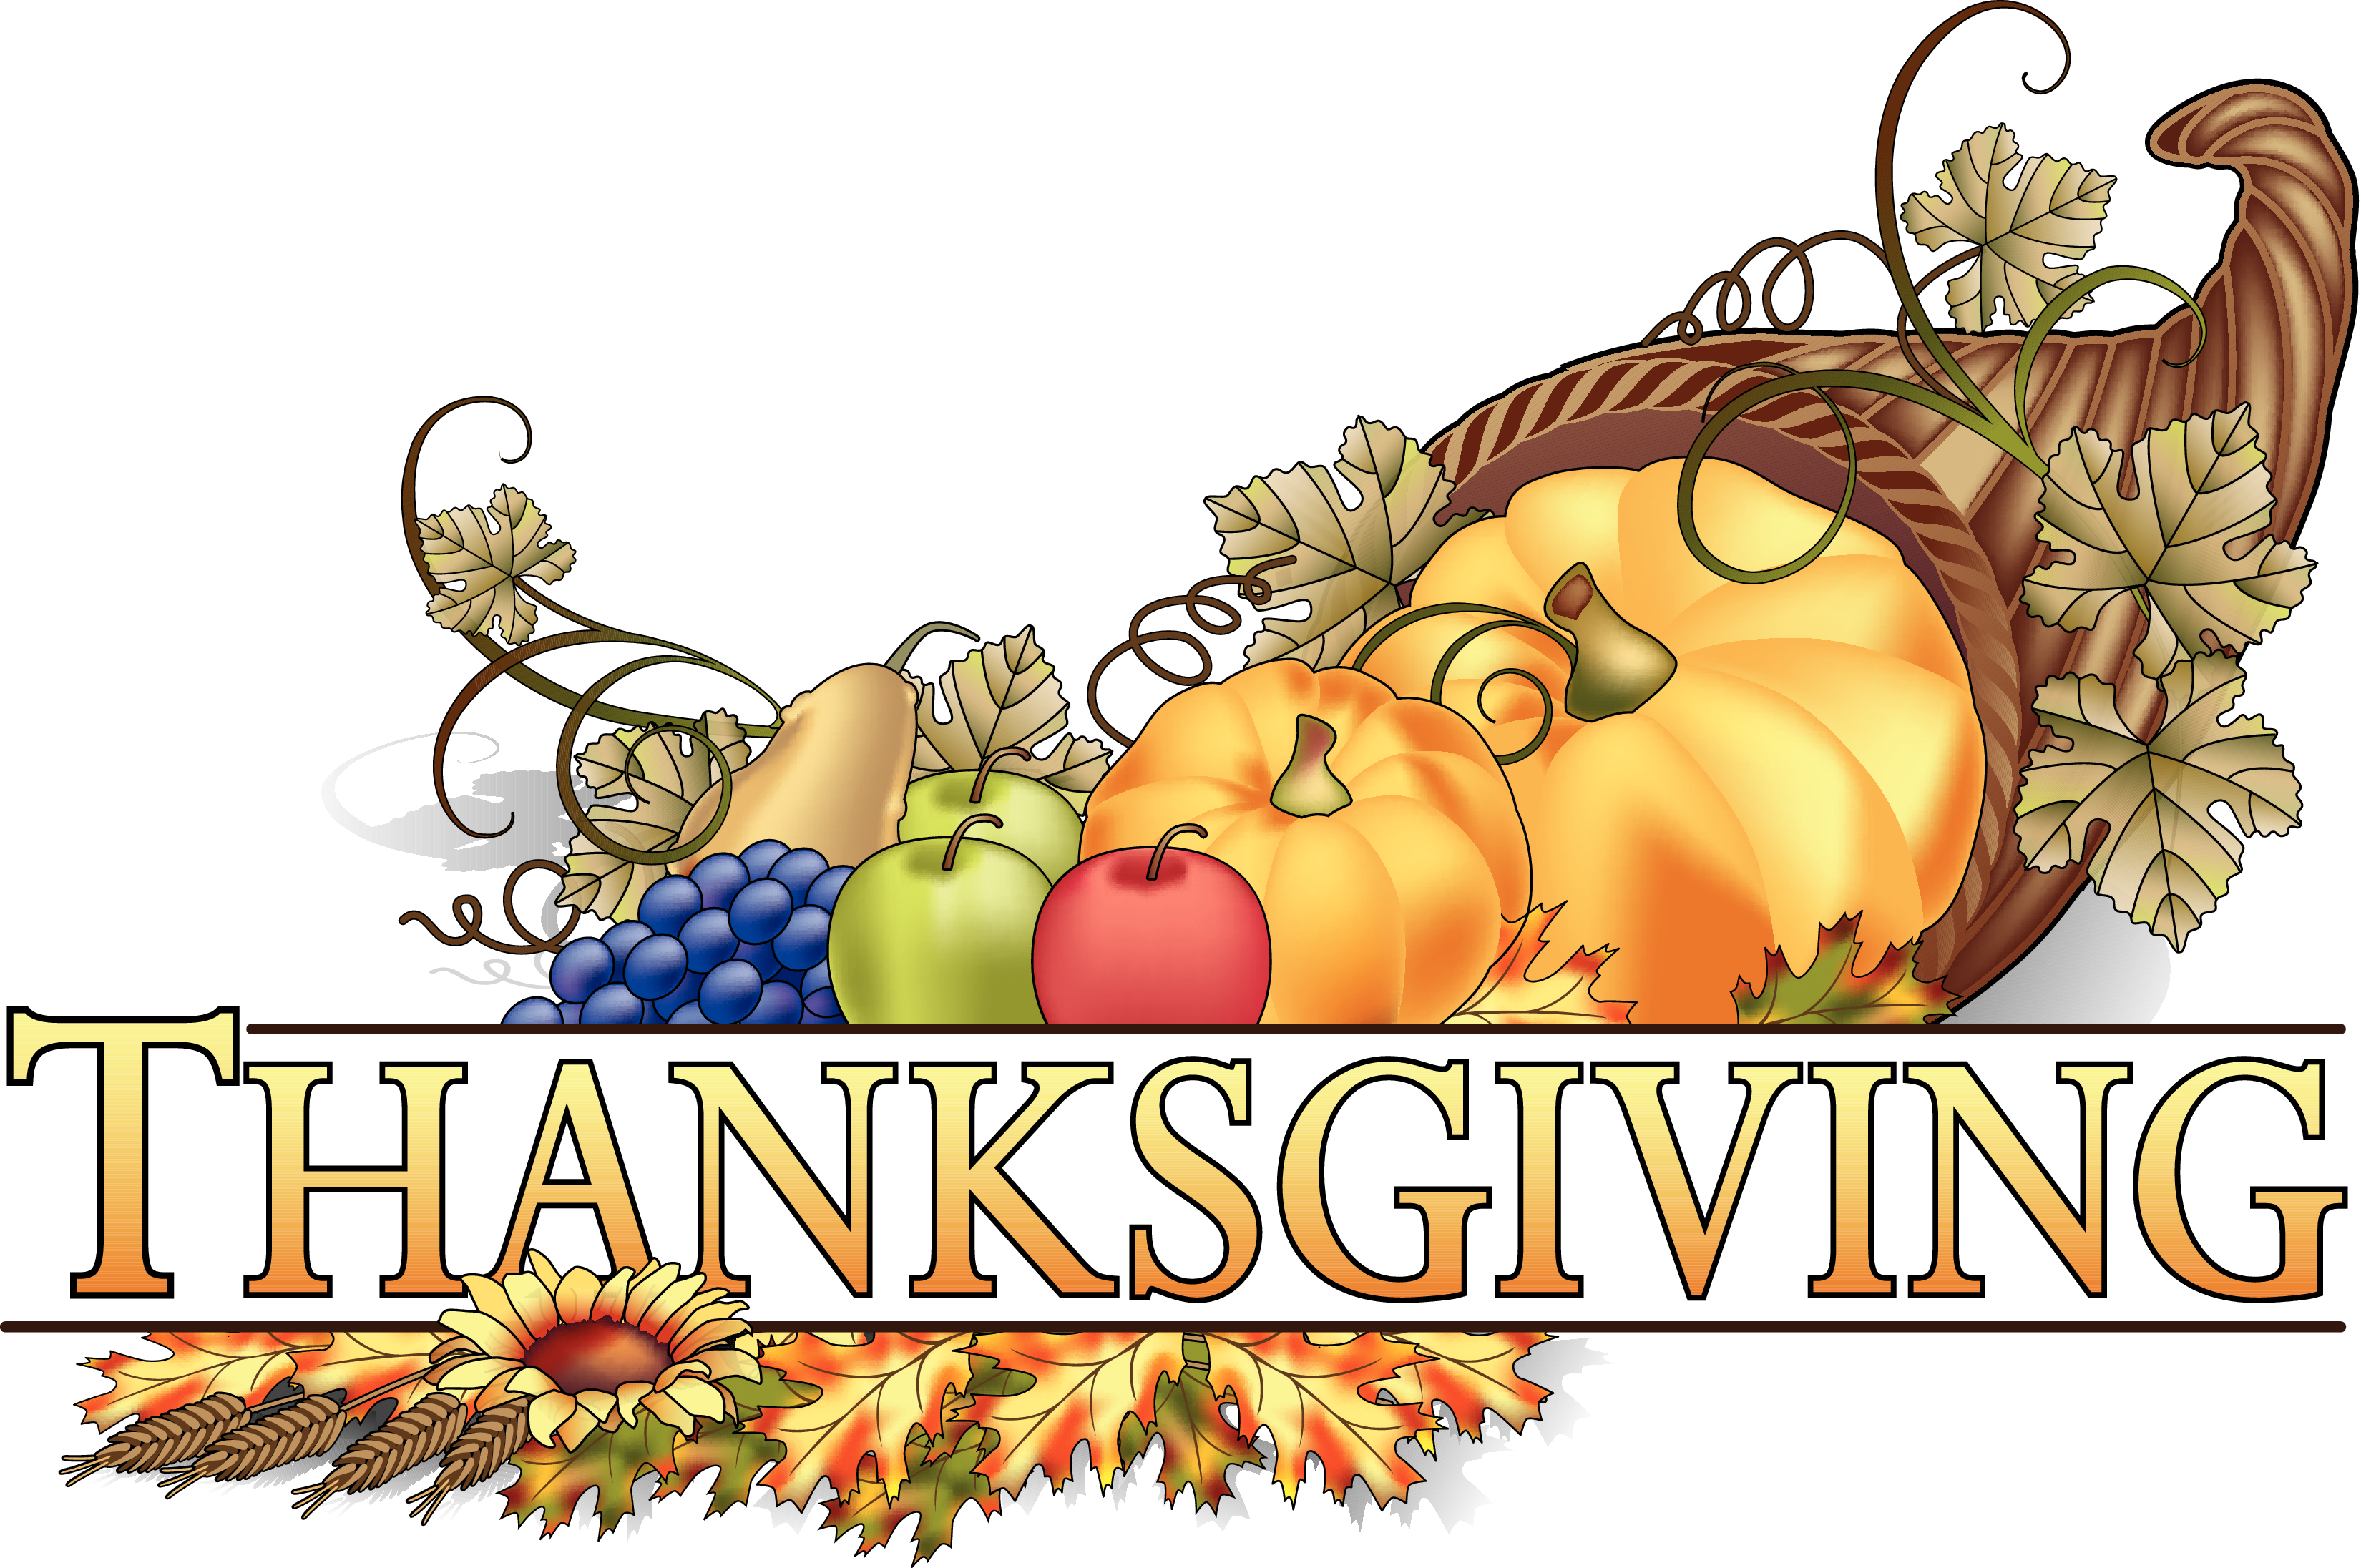 Snoopy after thanksgiving clipart picture free download Exelent Word Wall Clip Art Frieze - Art & Wall Decor - hecatalog.info picture free download